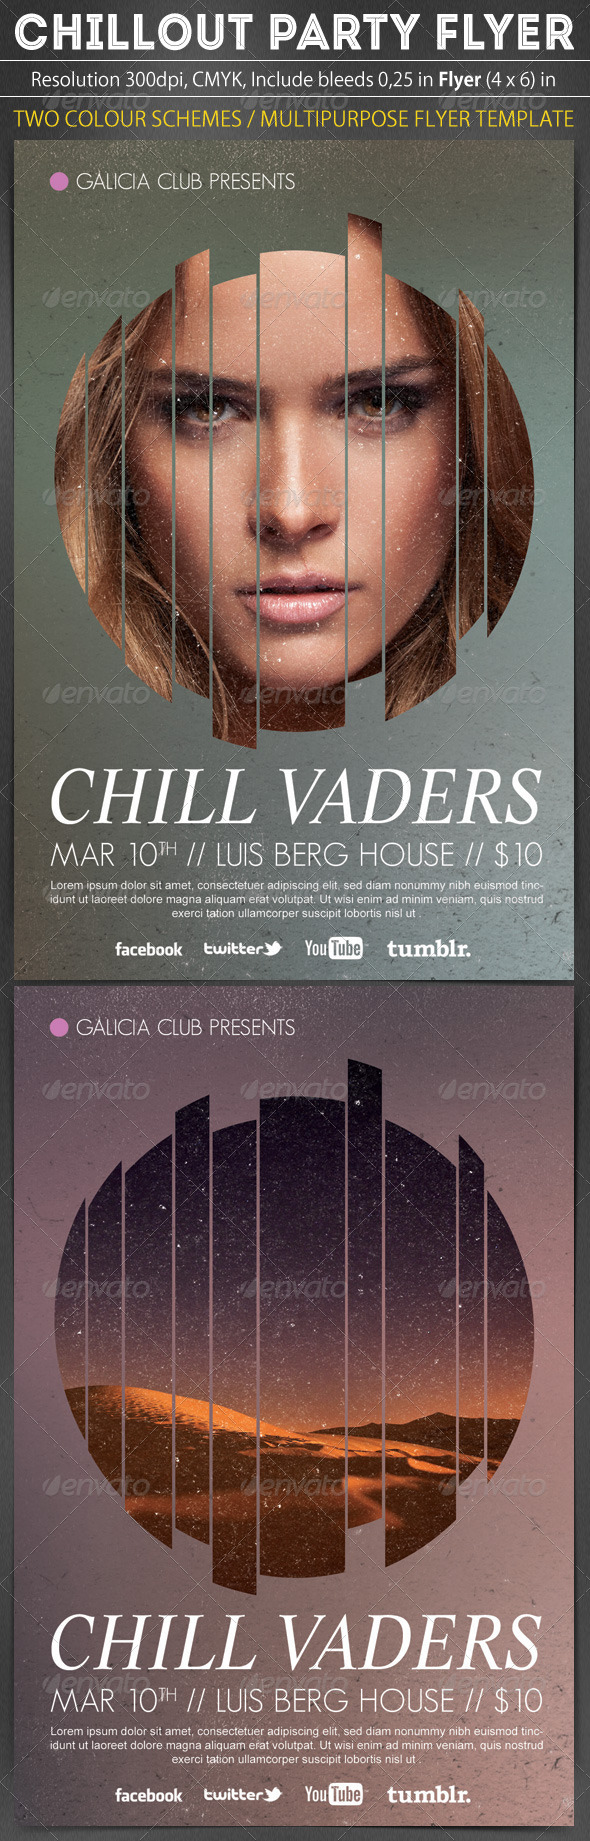 GraphicRiver Chillout Party Flyer Template 6584544